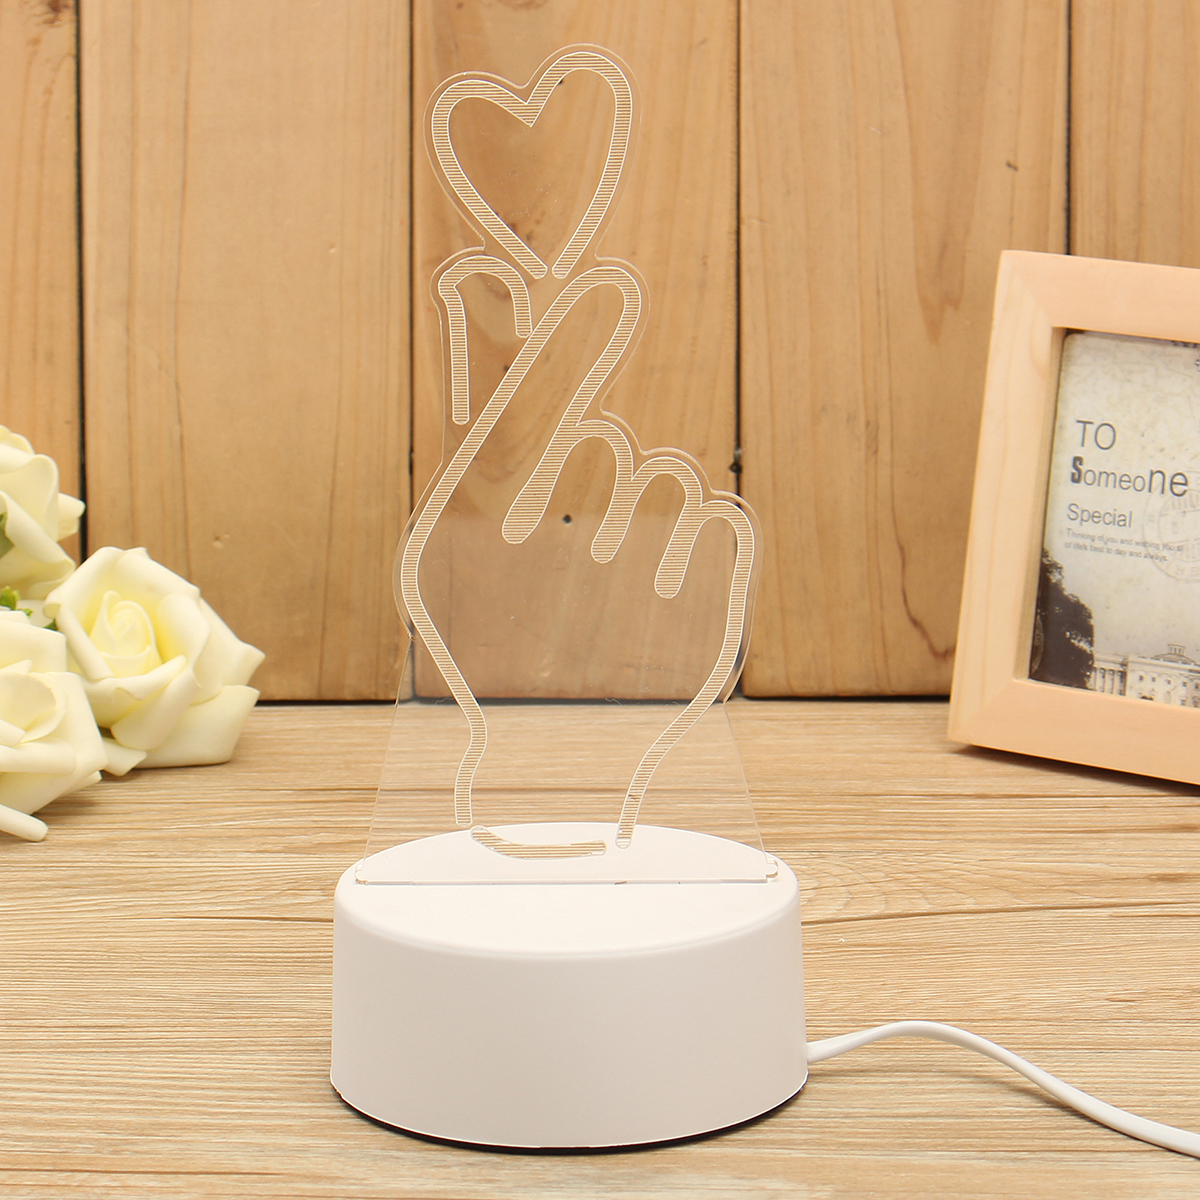 3D Love Heart Gesture LED Night Light Table Lamp Button Switch Room Decor Gift